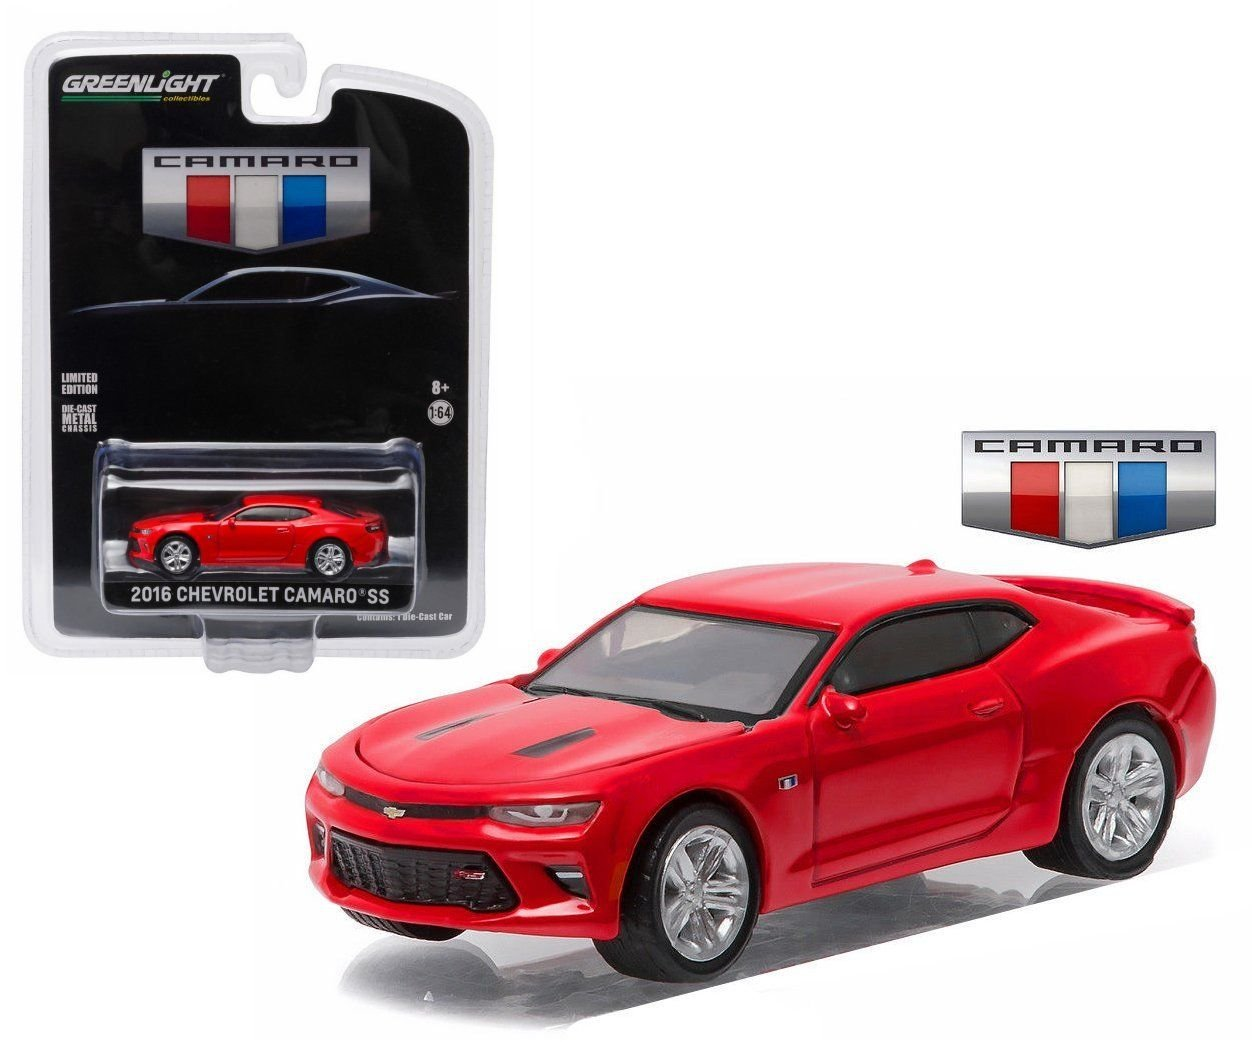 New 1:64 GrünLIGHT COLLECTION - ROT 2016 CHEVROLET CAMARO SS ALL NEW UNVEILING EDITION Diecast Model Car By Grünlight by Grünlight